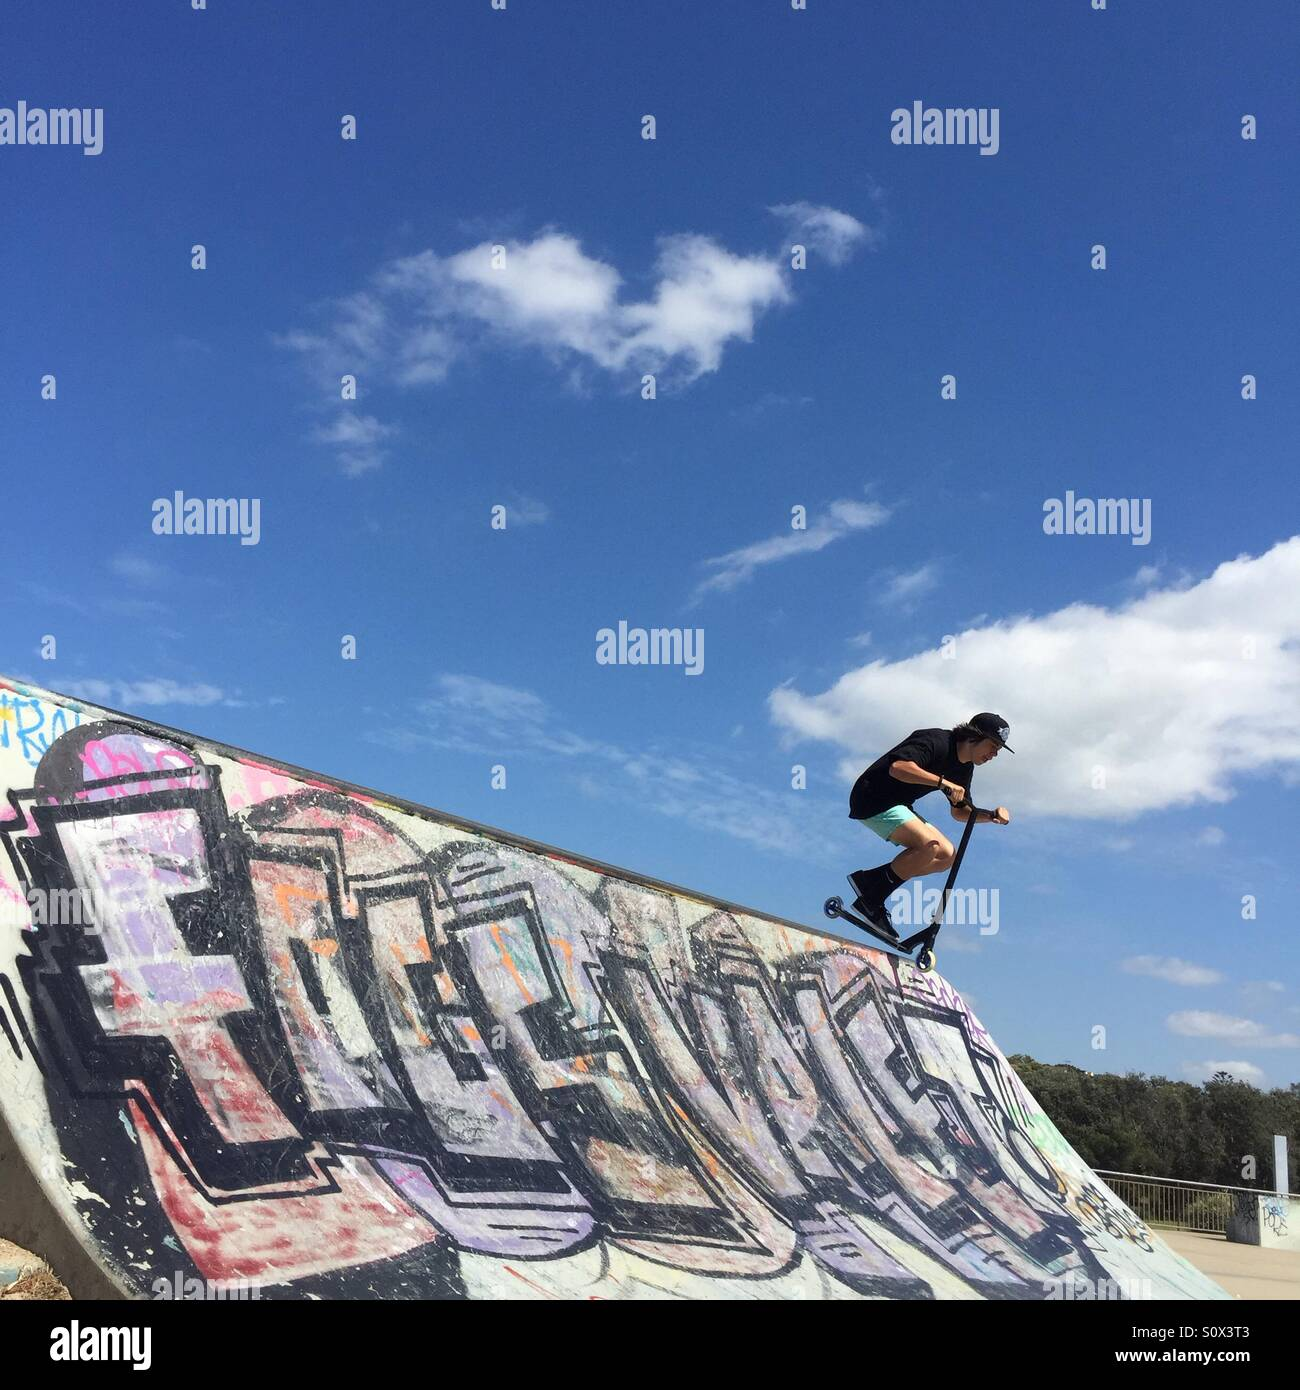 Teenager riding scooter sur skate park Photo Stock